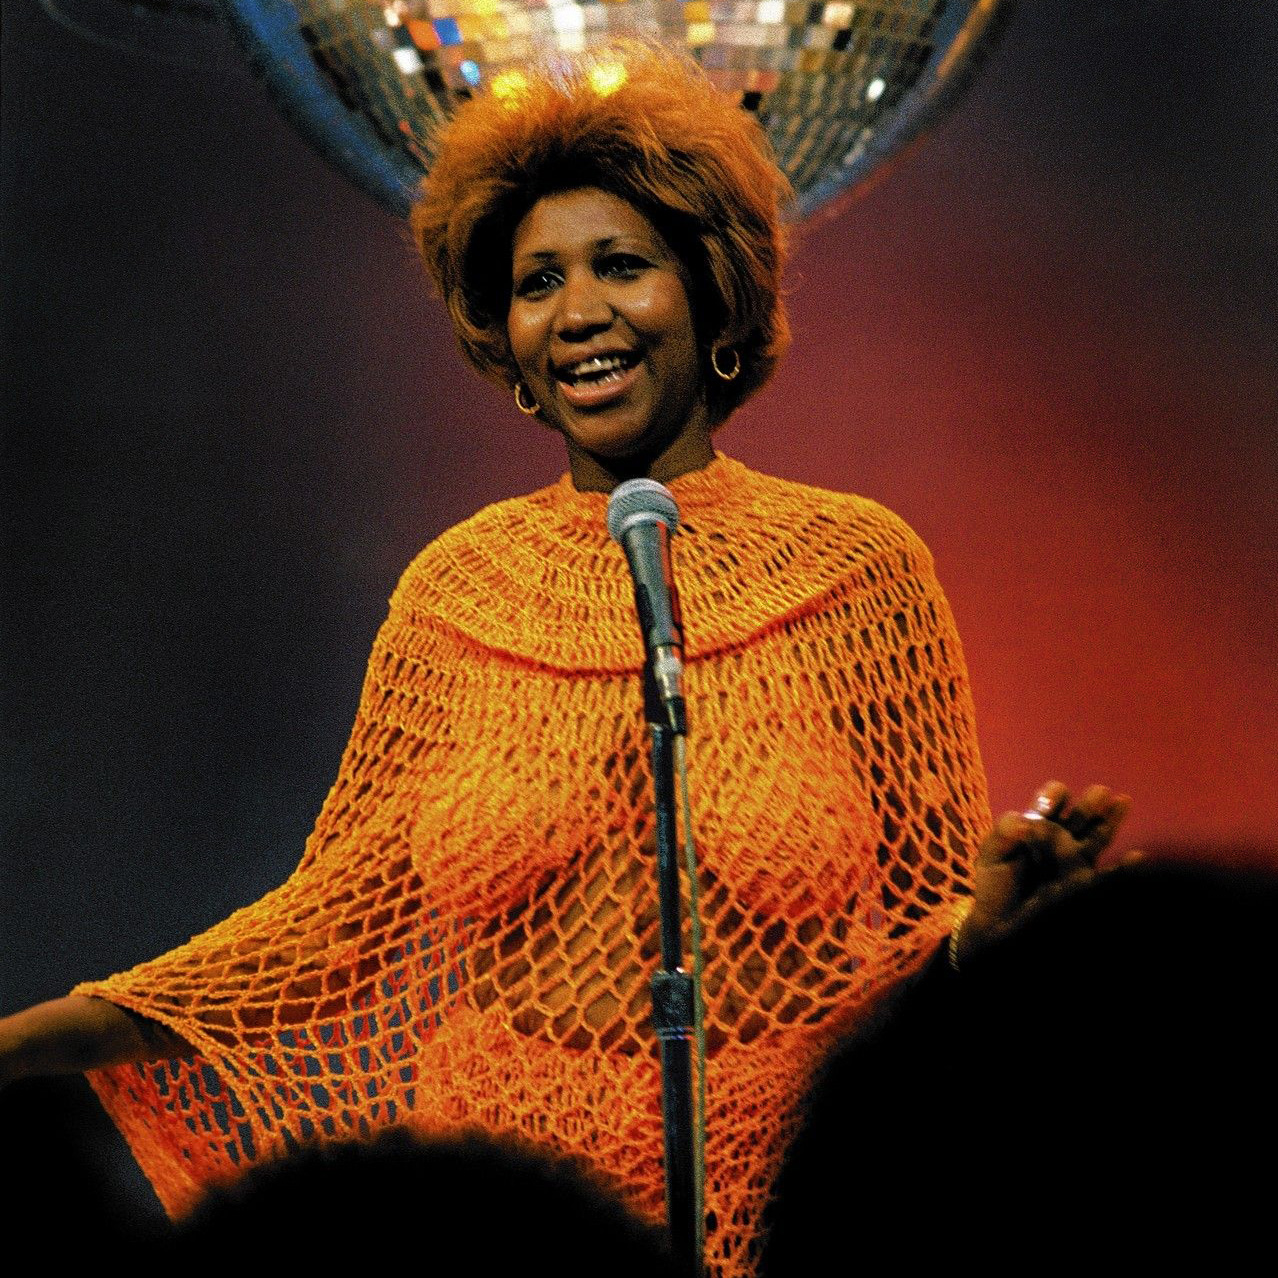 Aretha Franklin Boobs.jpg